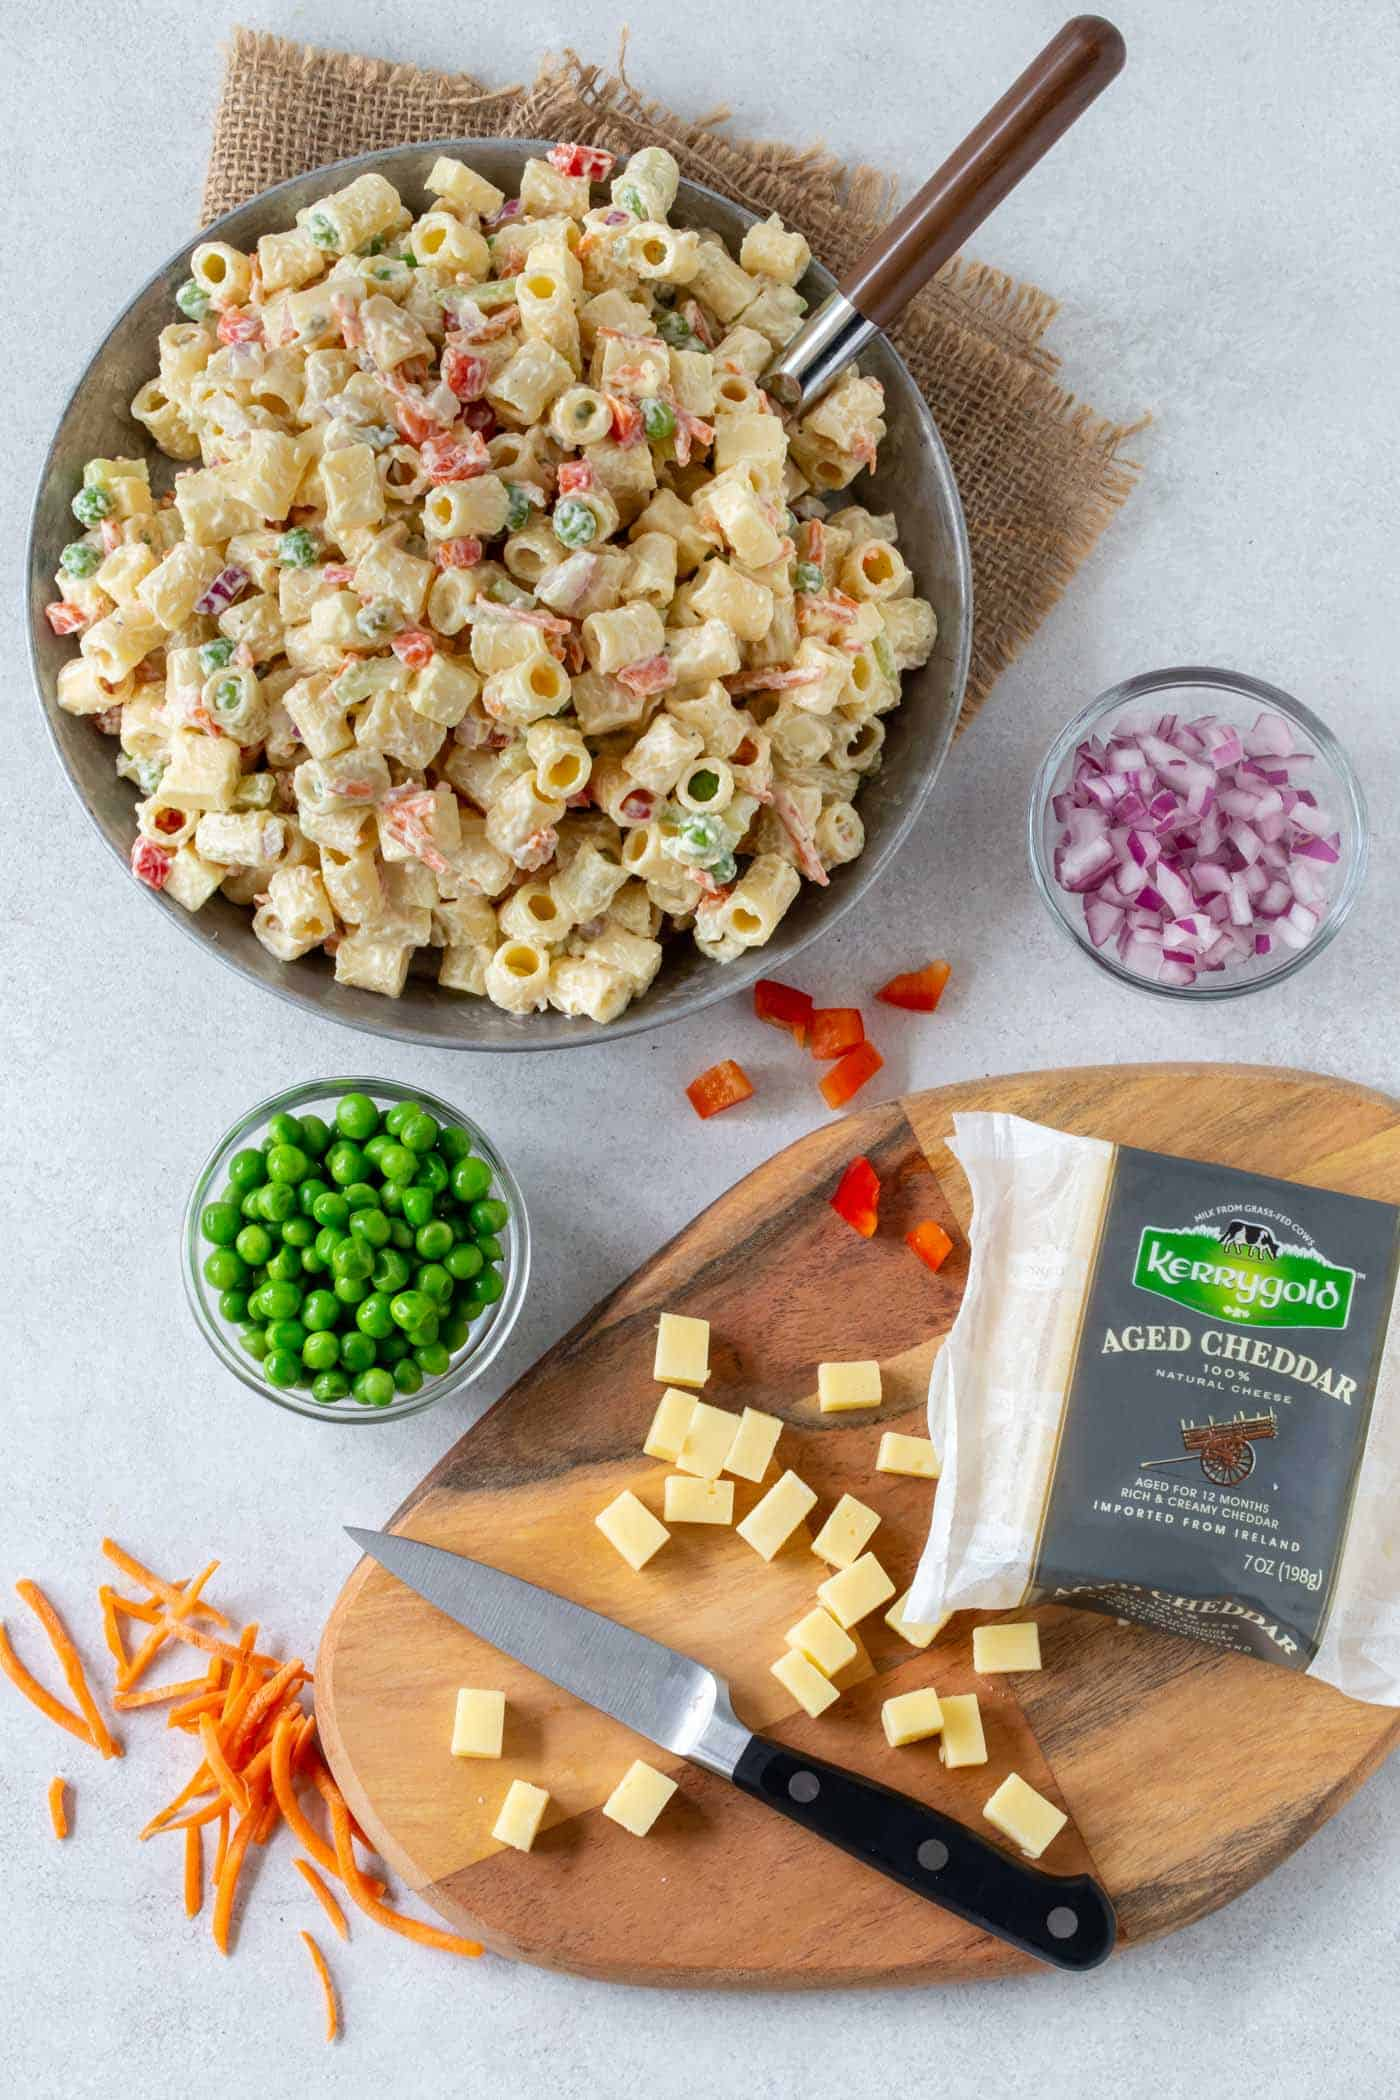 Grey bowl filled with creamy, Classic Macaroni Salad recipe. Surrounded by ingredients like chopped red onion, bell pepper, carrots and diced Kerrygold Aged Cheddar Cheese.